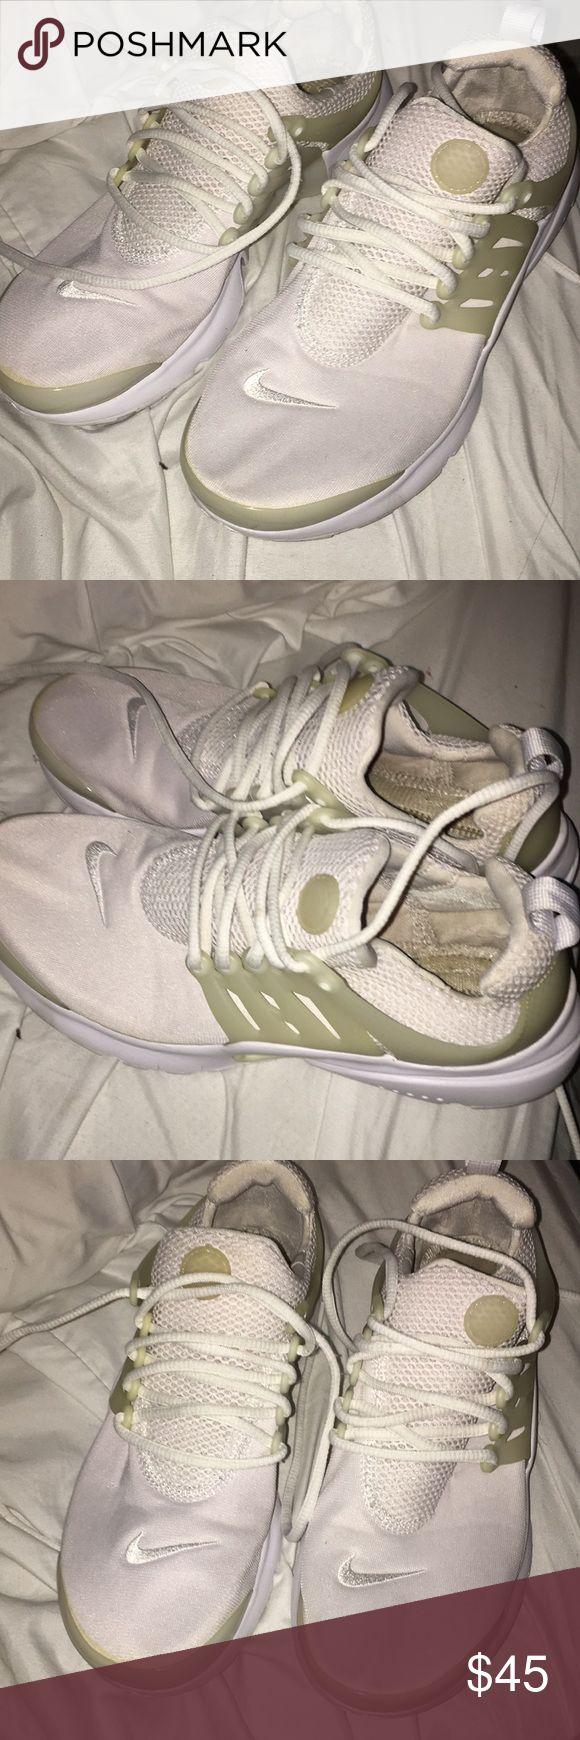 Nike presto Nike presto white 7 youth Nike Shoes Sneakers